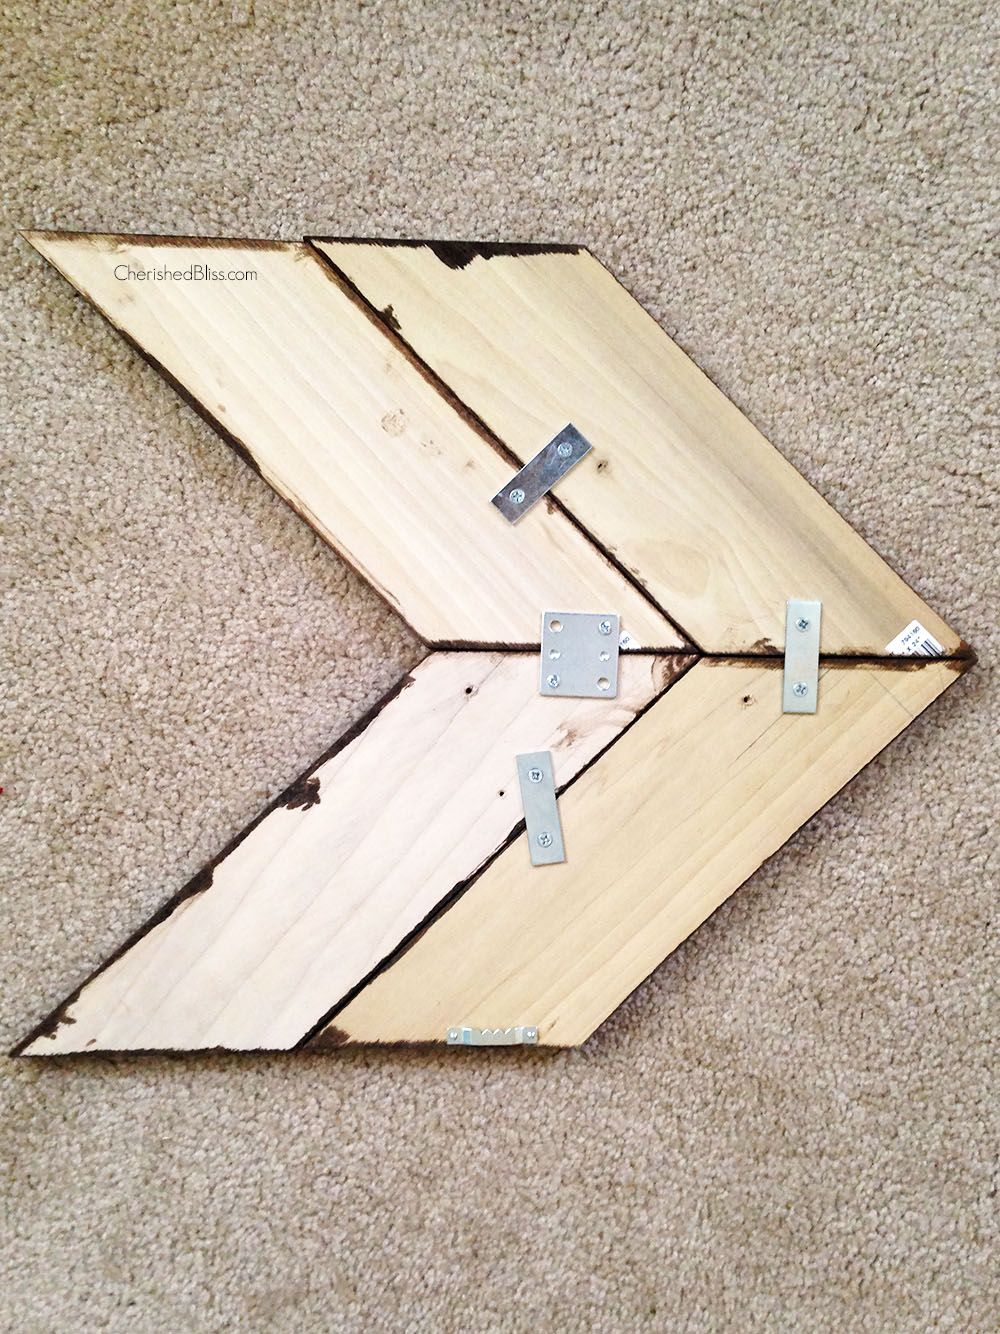 Diy Wooden Arrow Tutorial Wooden Diy Wood Diy Wooden Arrows